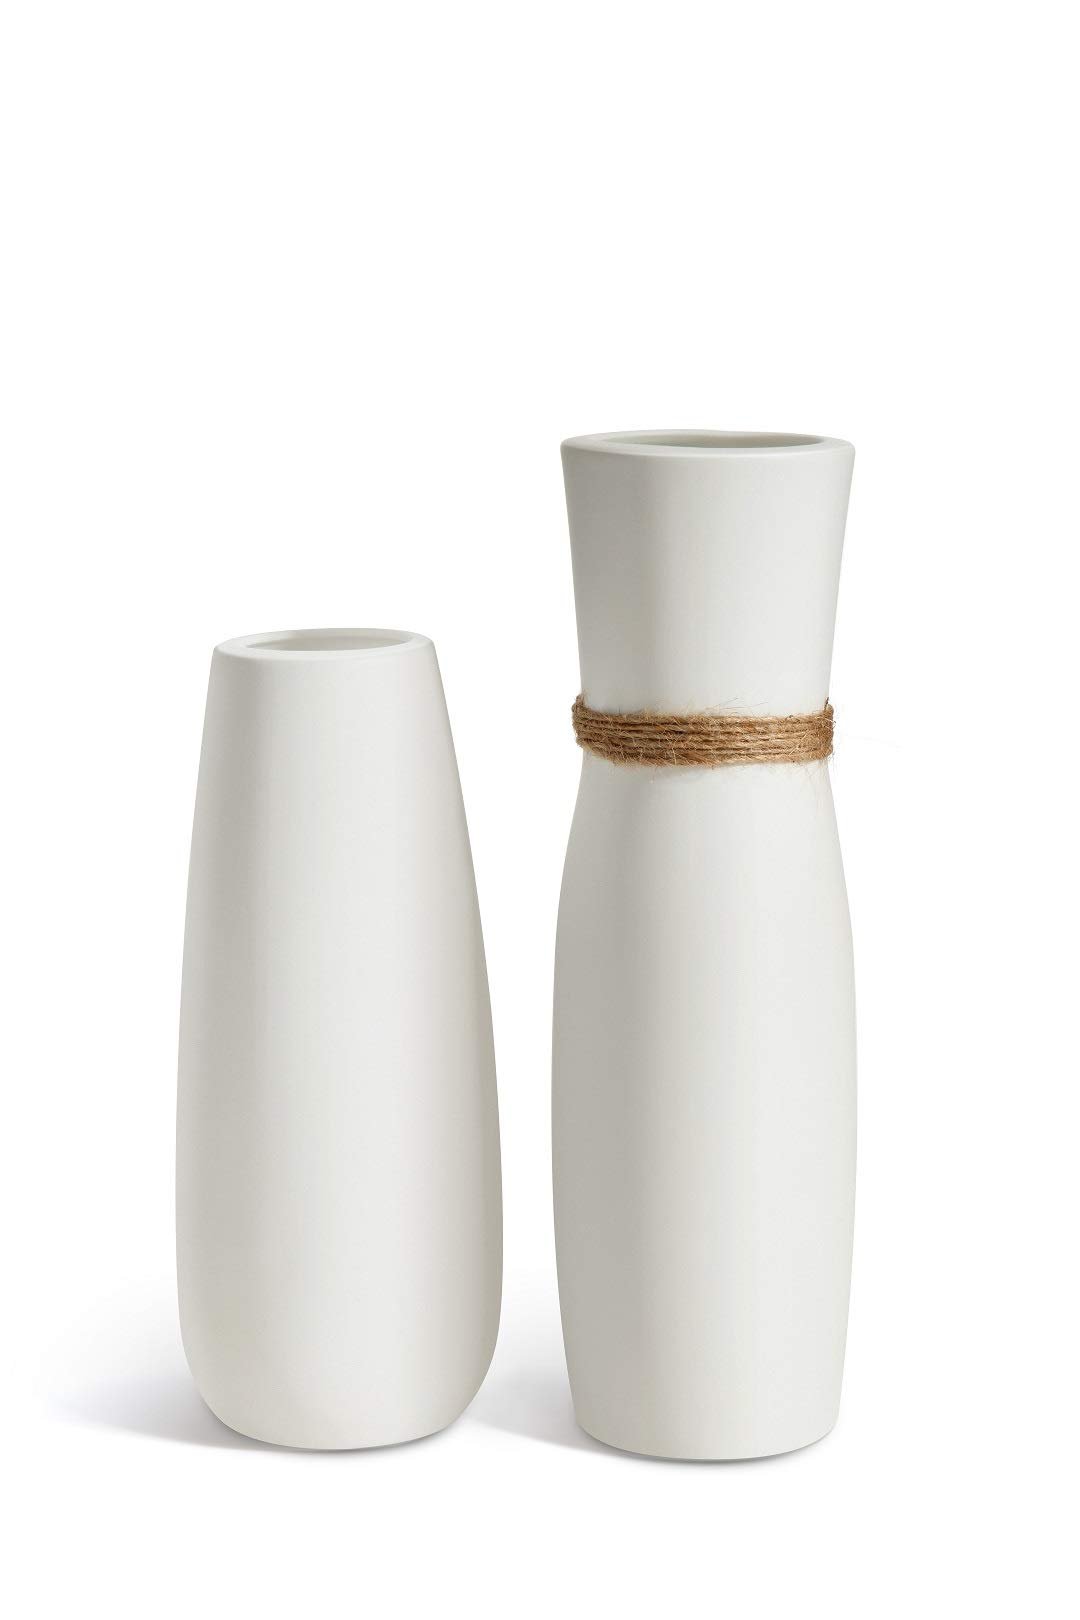 Opps White Ceramic Vases With Differing Unique Rope Design For Home Décor U2013  Set Of 2